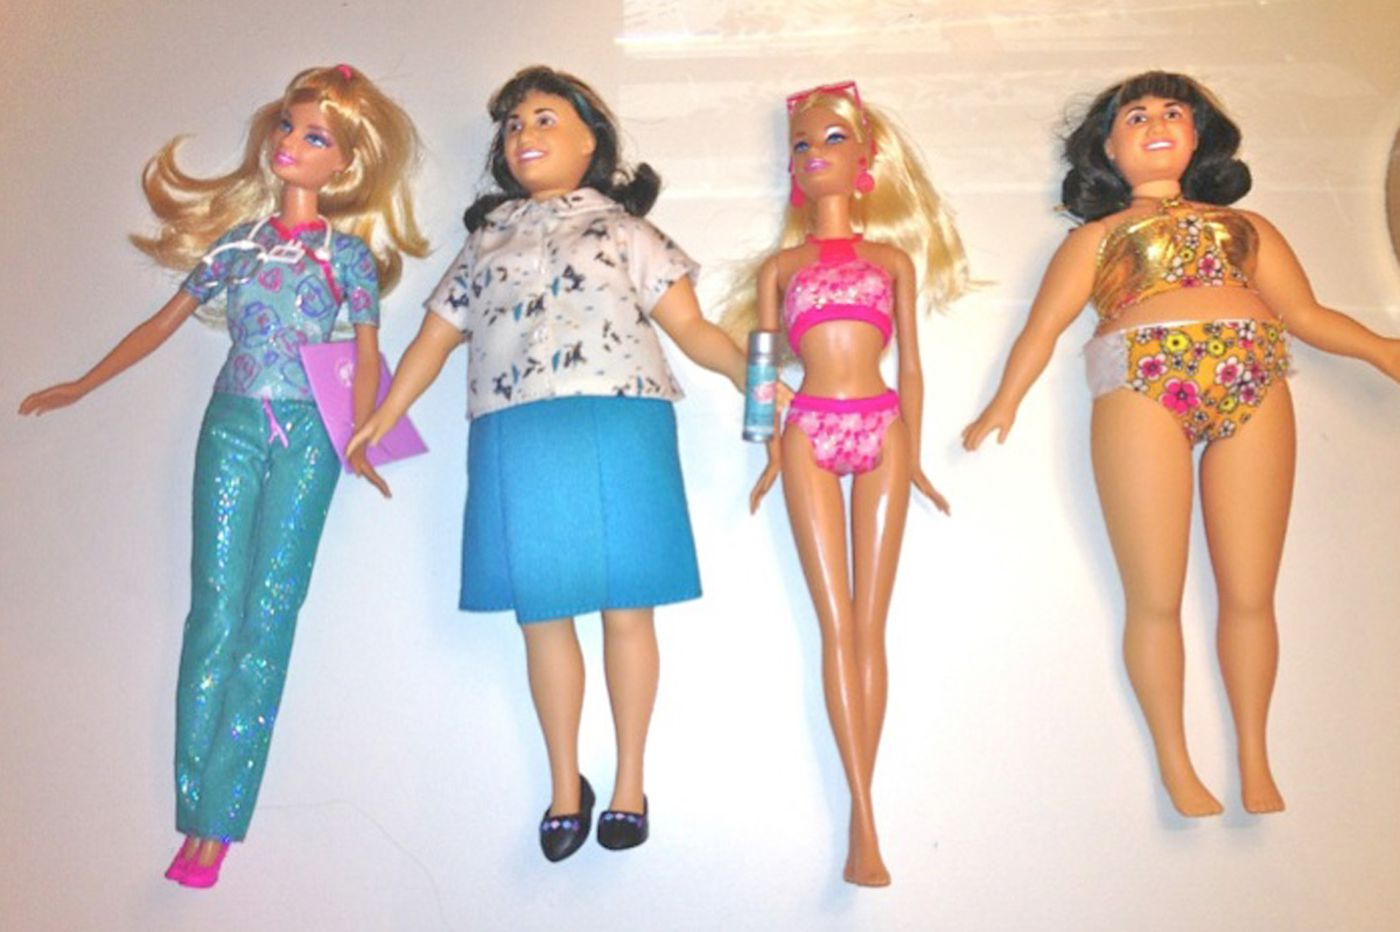 Three minutes with Barbie and they wanted to be thinner